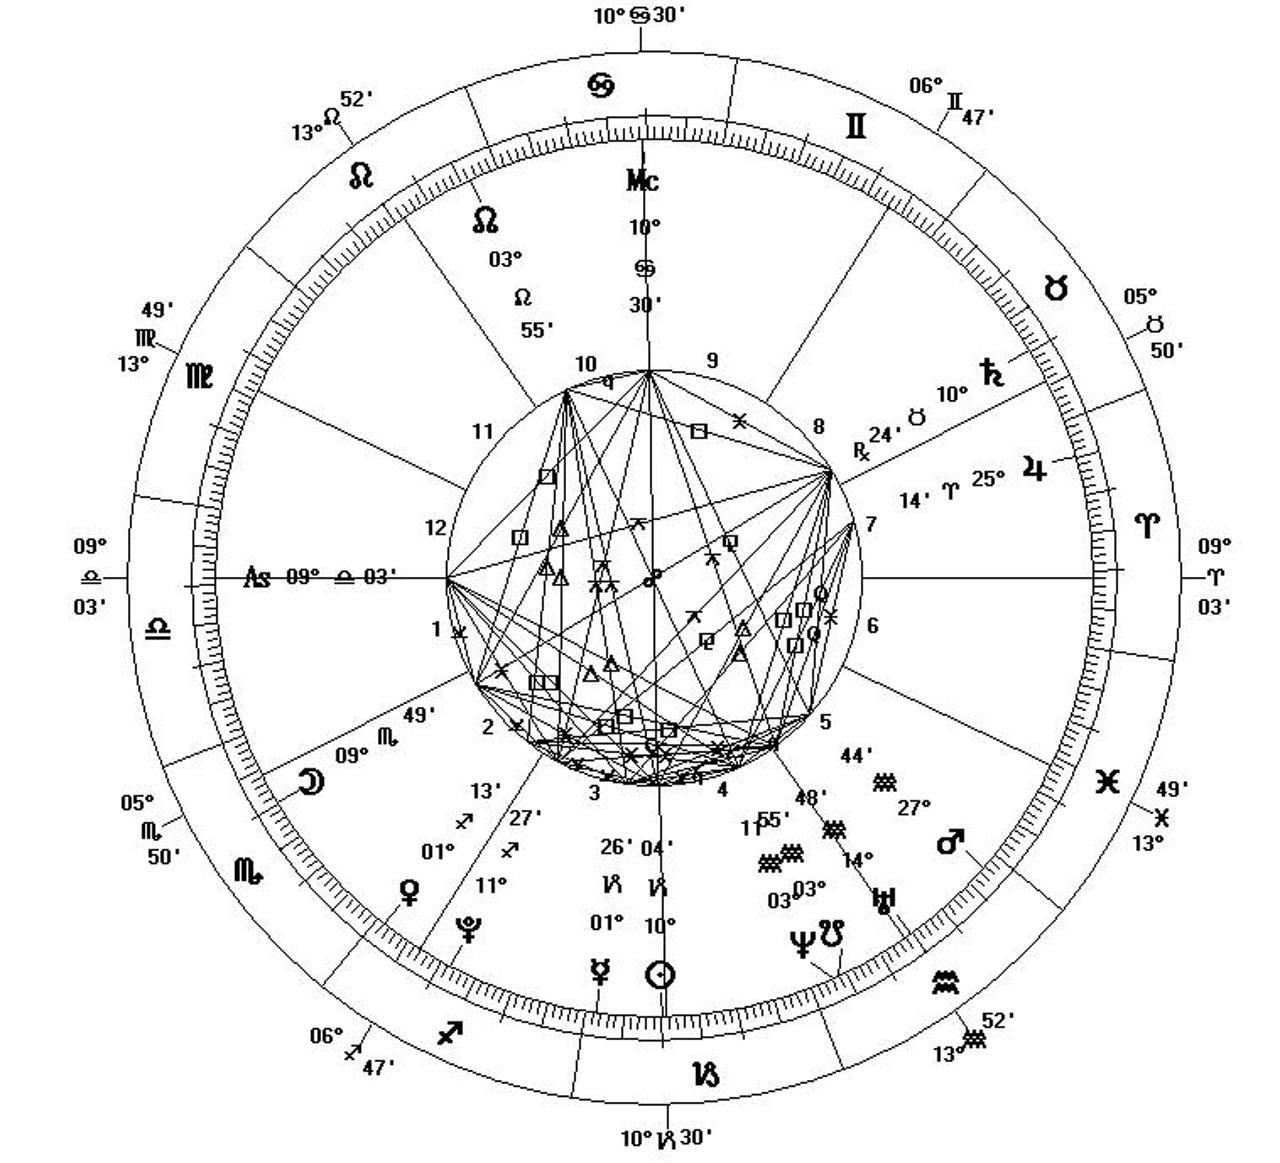 For Astrology Enthusiasts There Are Great Online Resources That Sites Offer Free Easy To Read Birth Charts Along With Insightful Interpretations